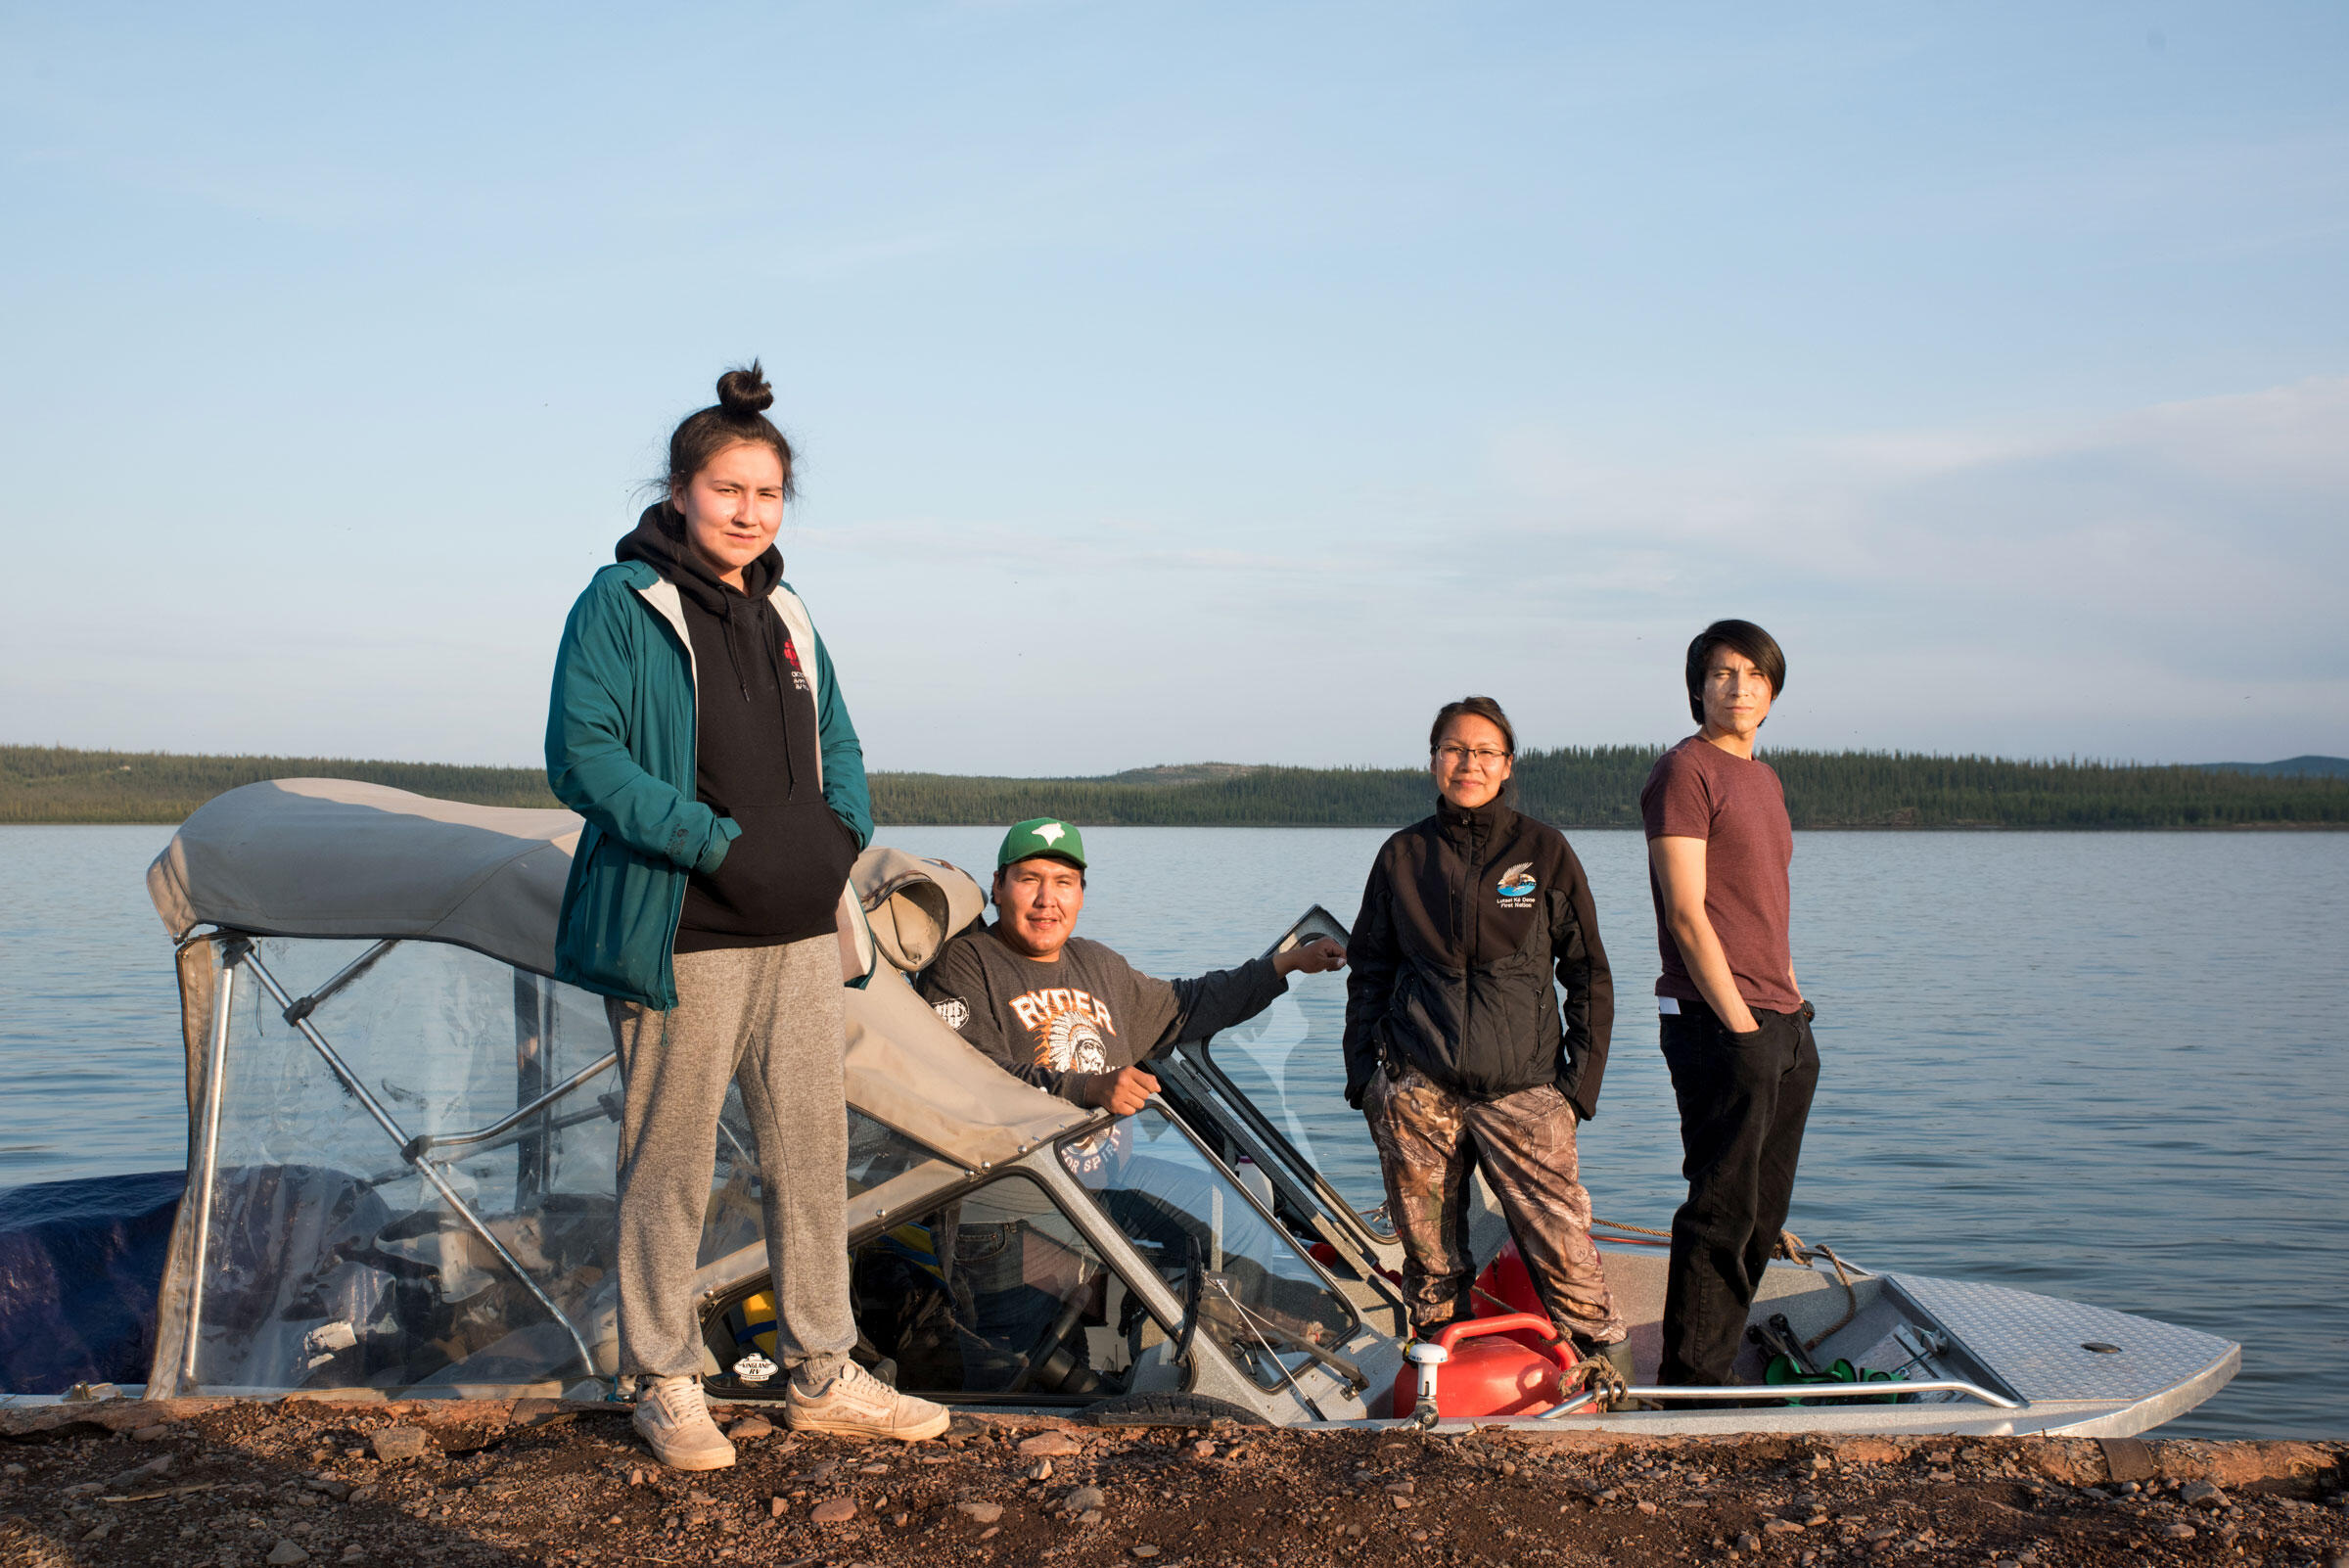 Chyanna Catholique, 17, Chase Lockhart, 20, Shauna Catholique, 30 and Tyson Marlowe, 19, are members of the Ni hat'ni Dene Rangers. Their job is to monitor the land, water, wildlife, and tourists who come to the reserve. Pat Kane